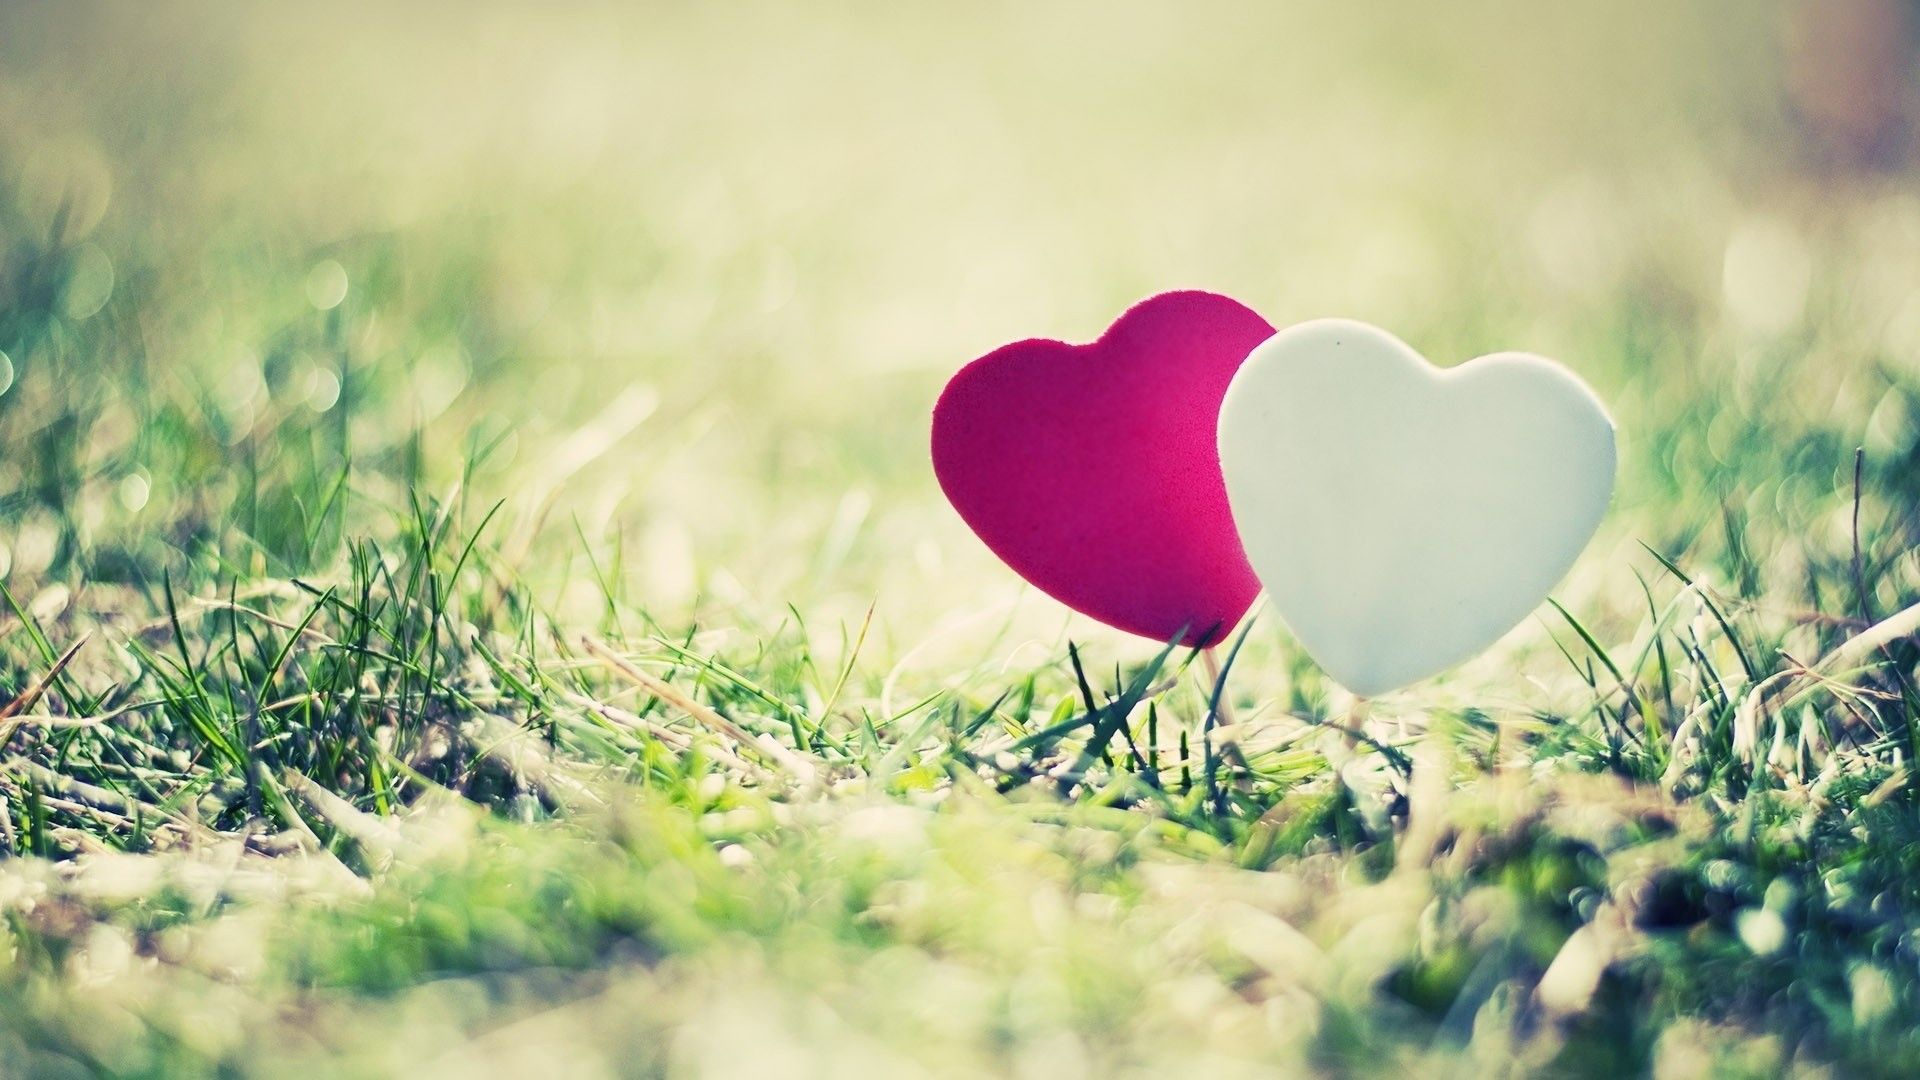 Love Wallpaper HD Free Download | New HD Wallpapers Download